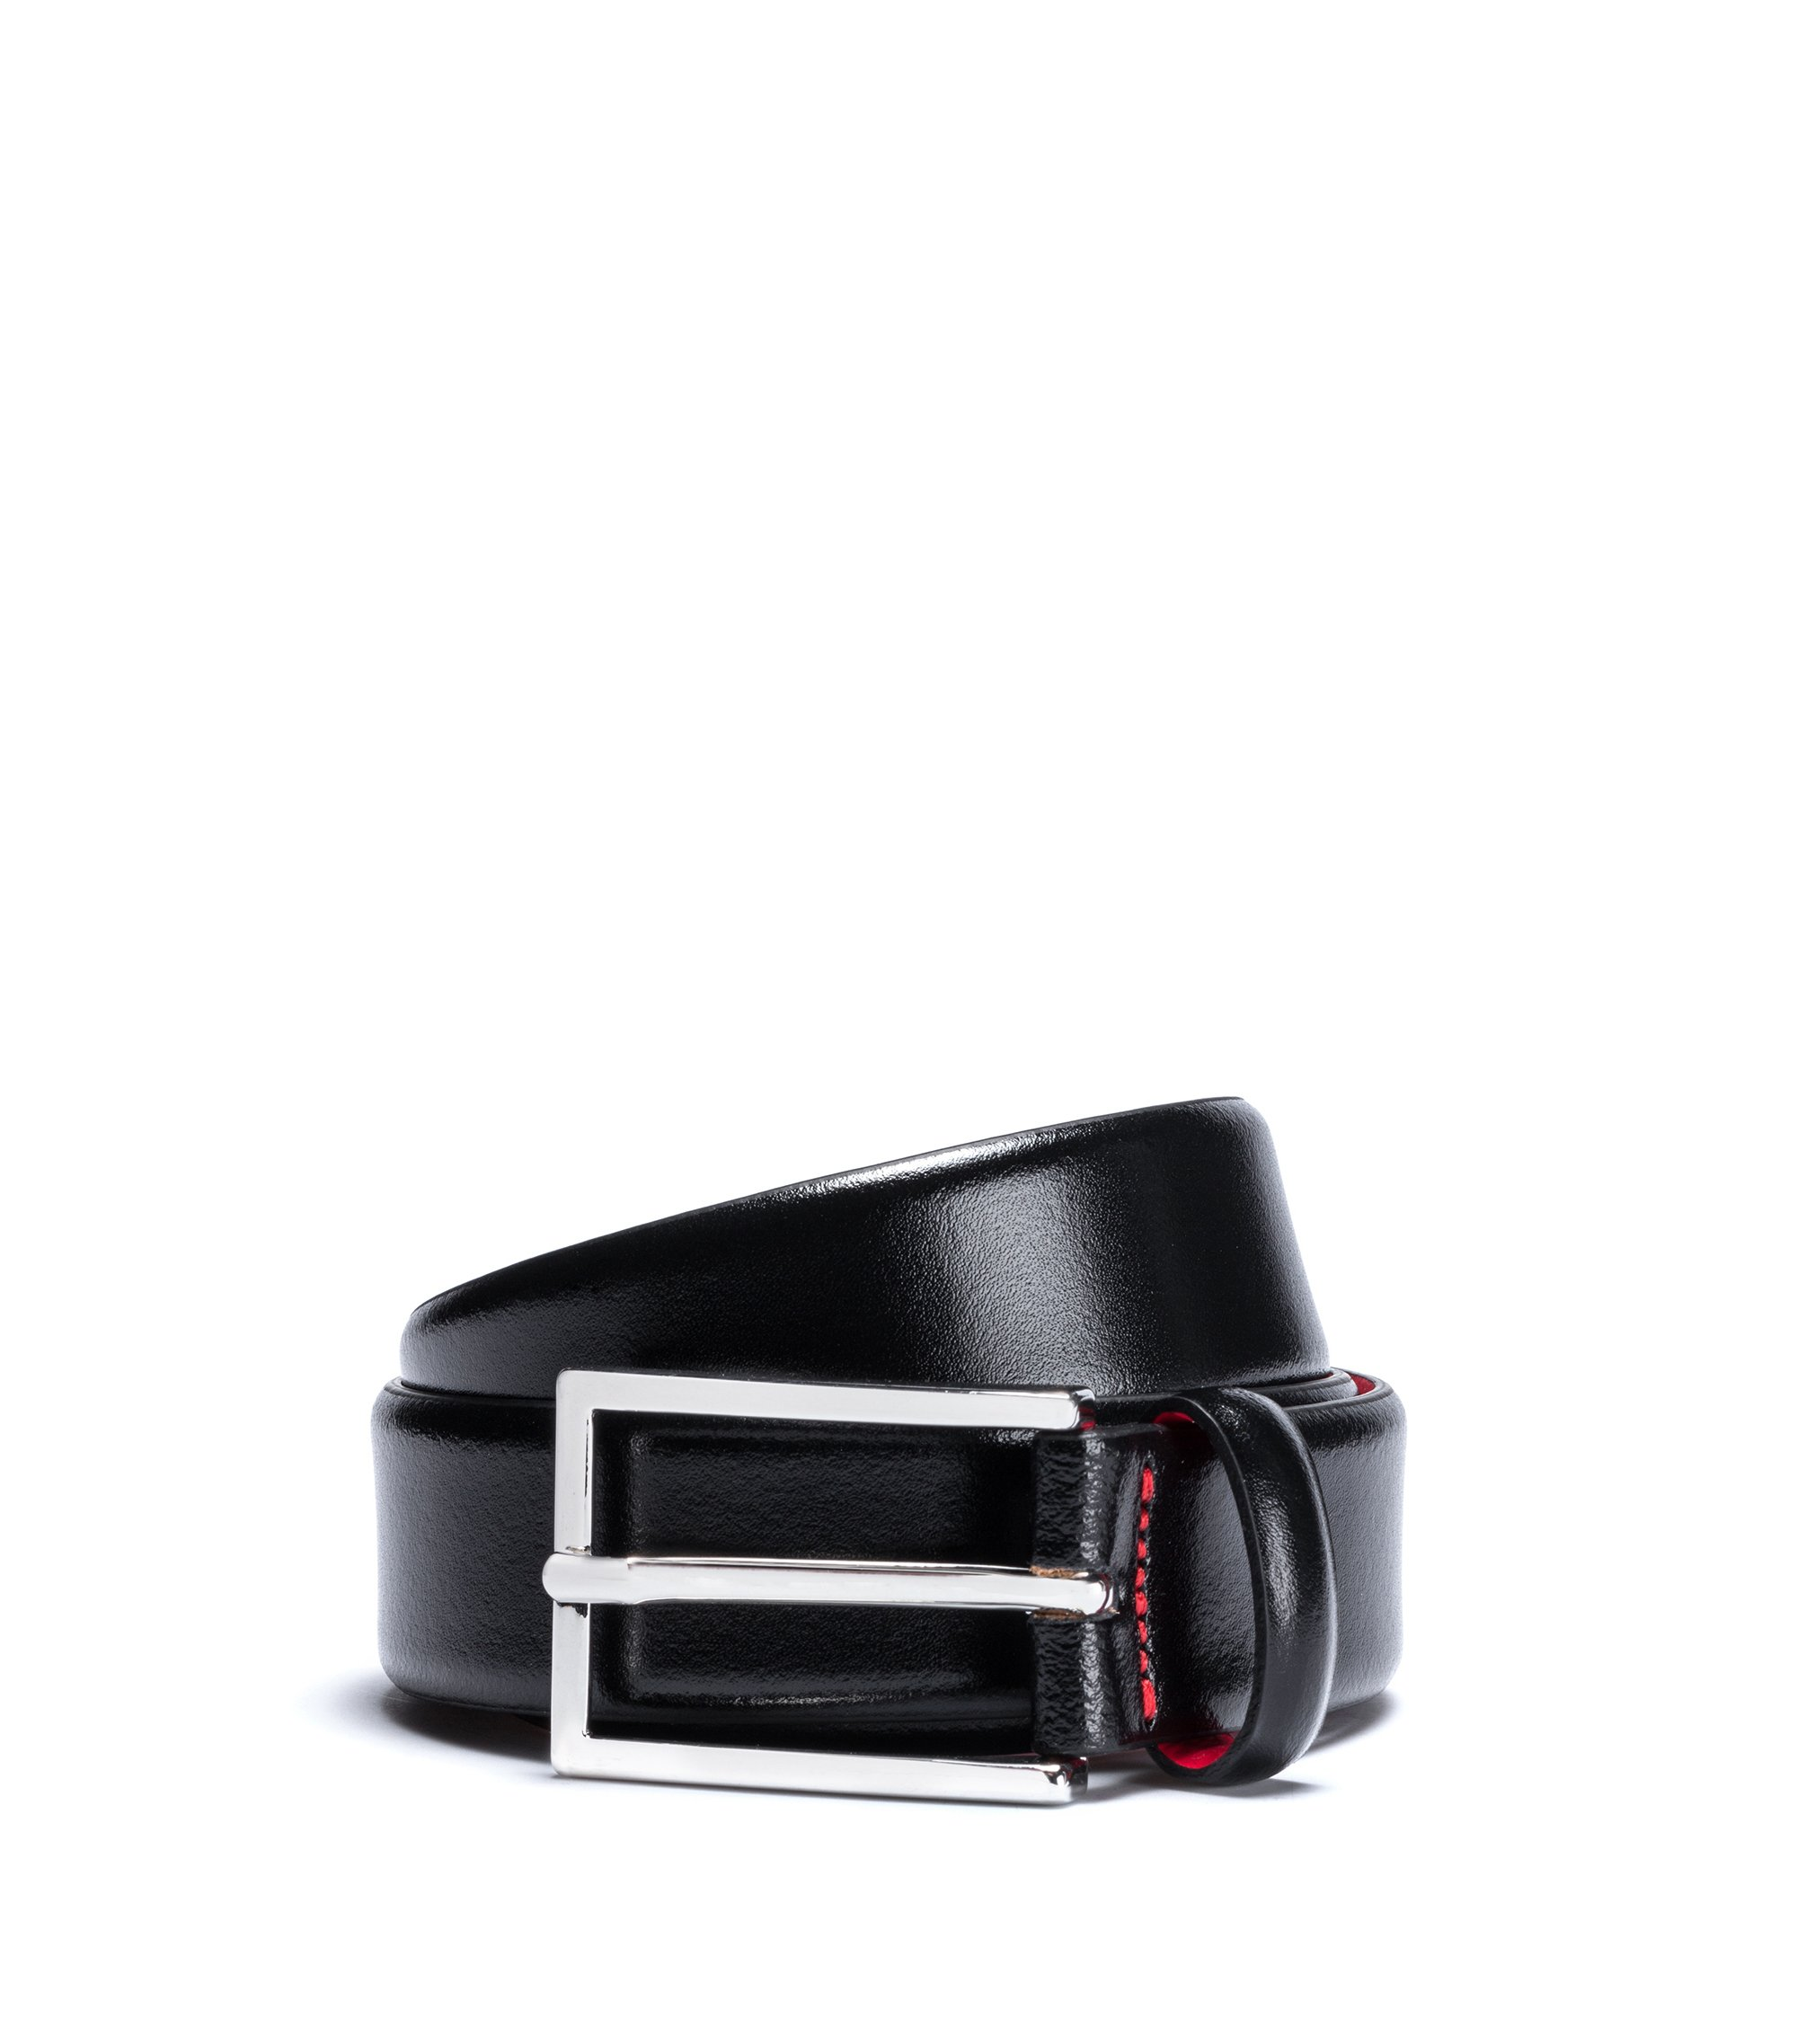 Leather belt with pigmented coating, Black